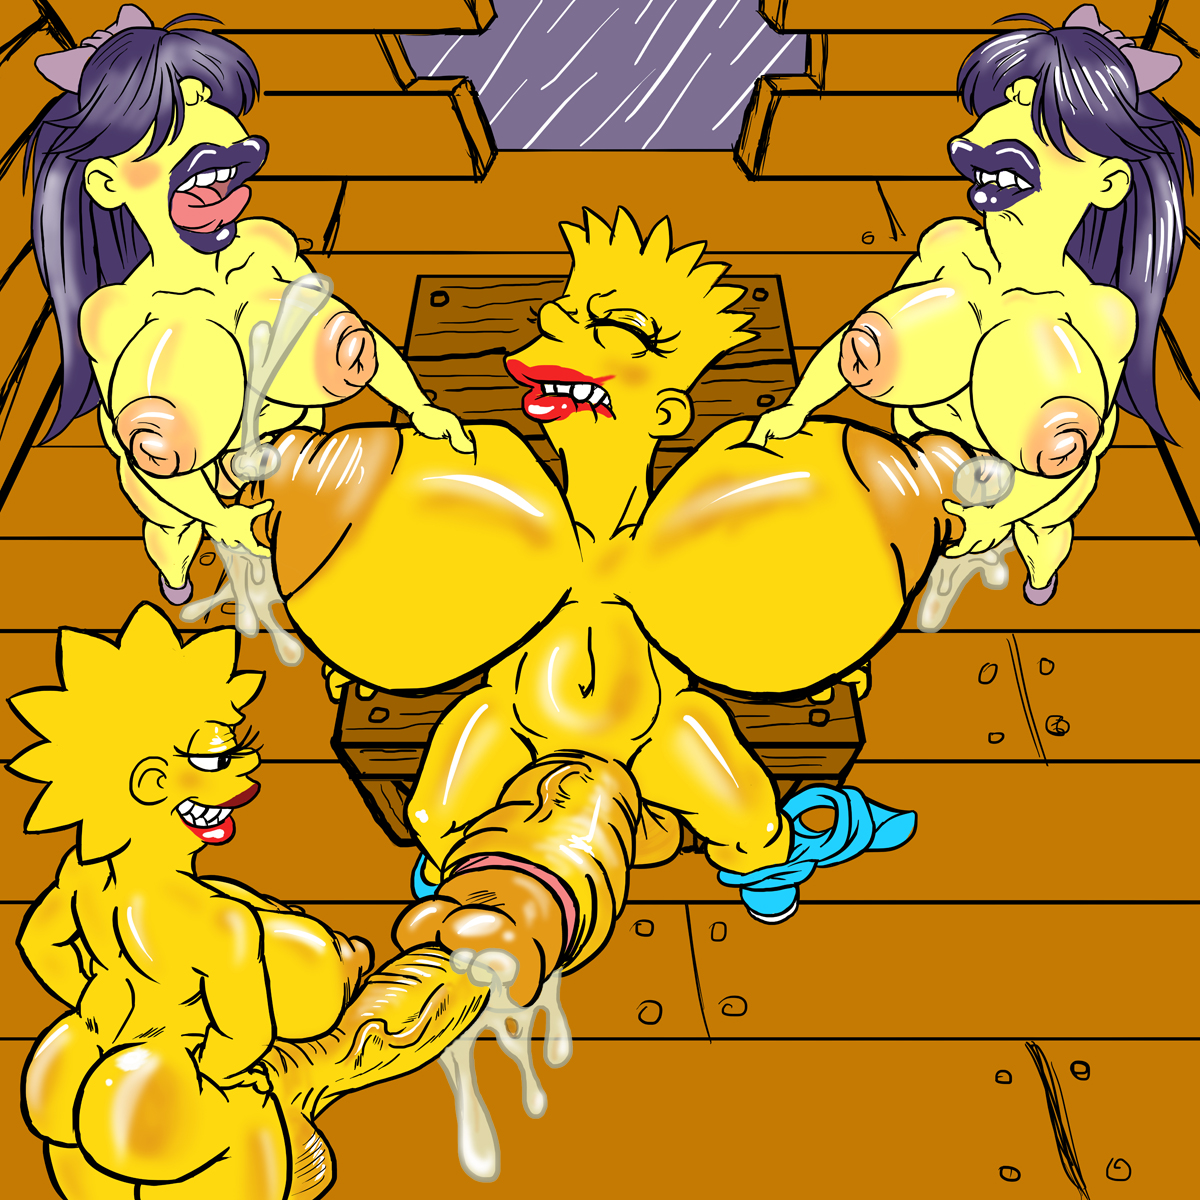 Final, sorry, Simpsons porn nude sex the purpose